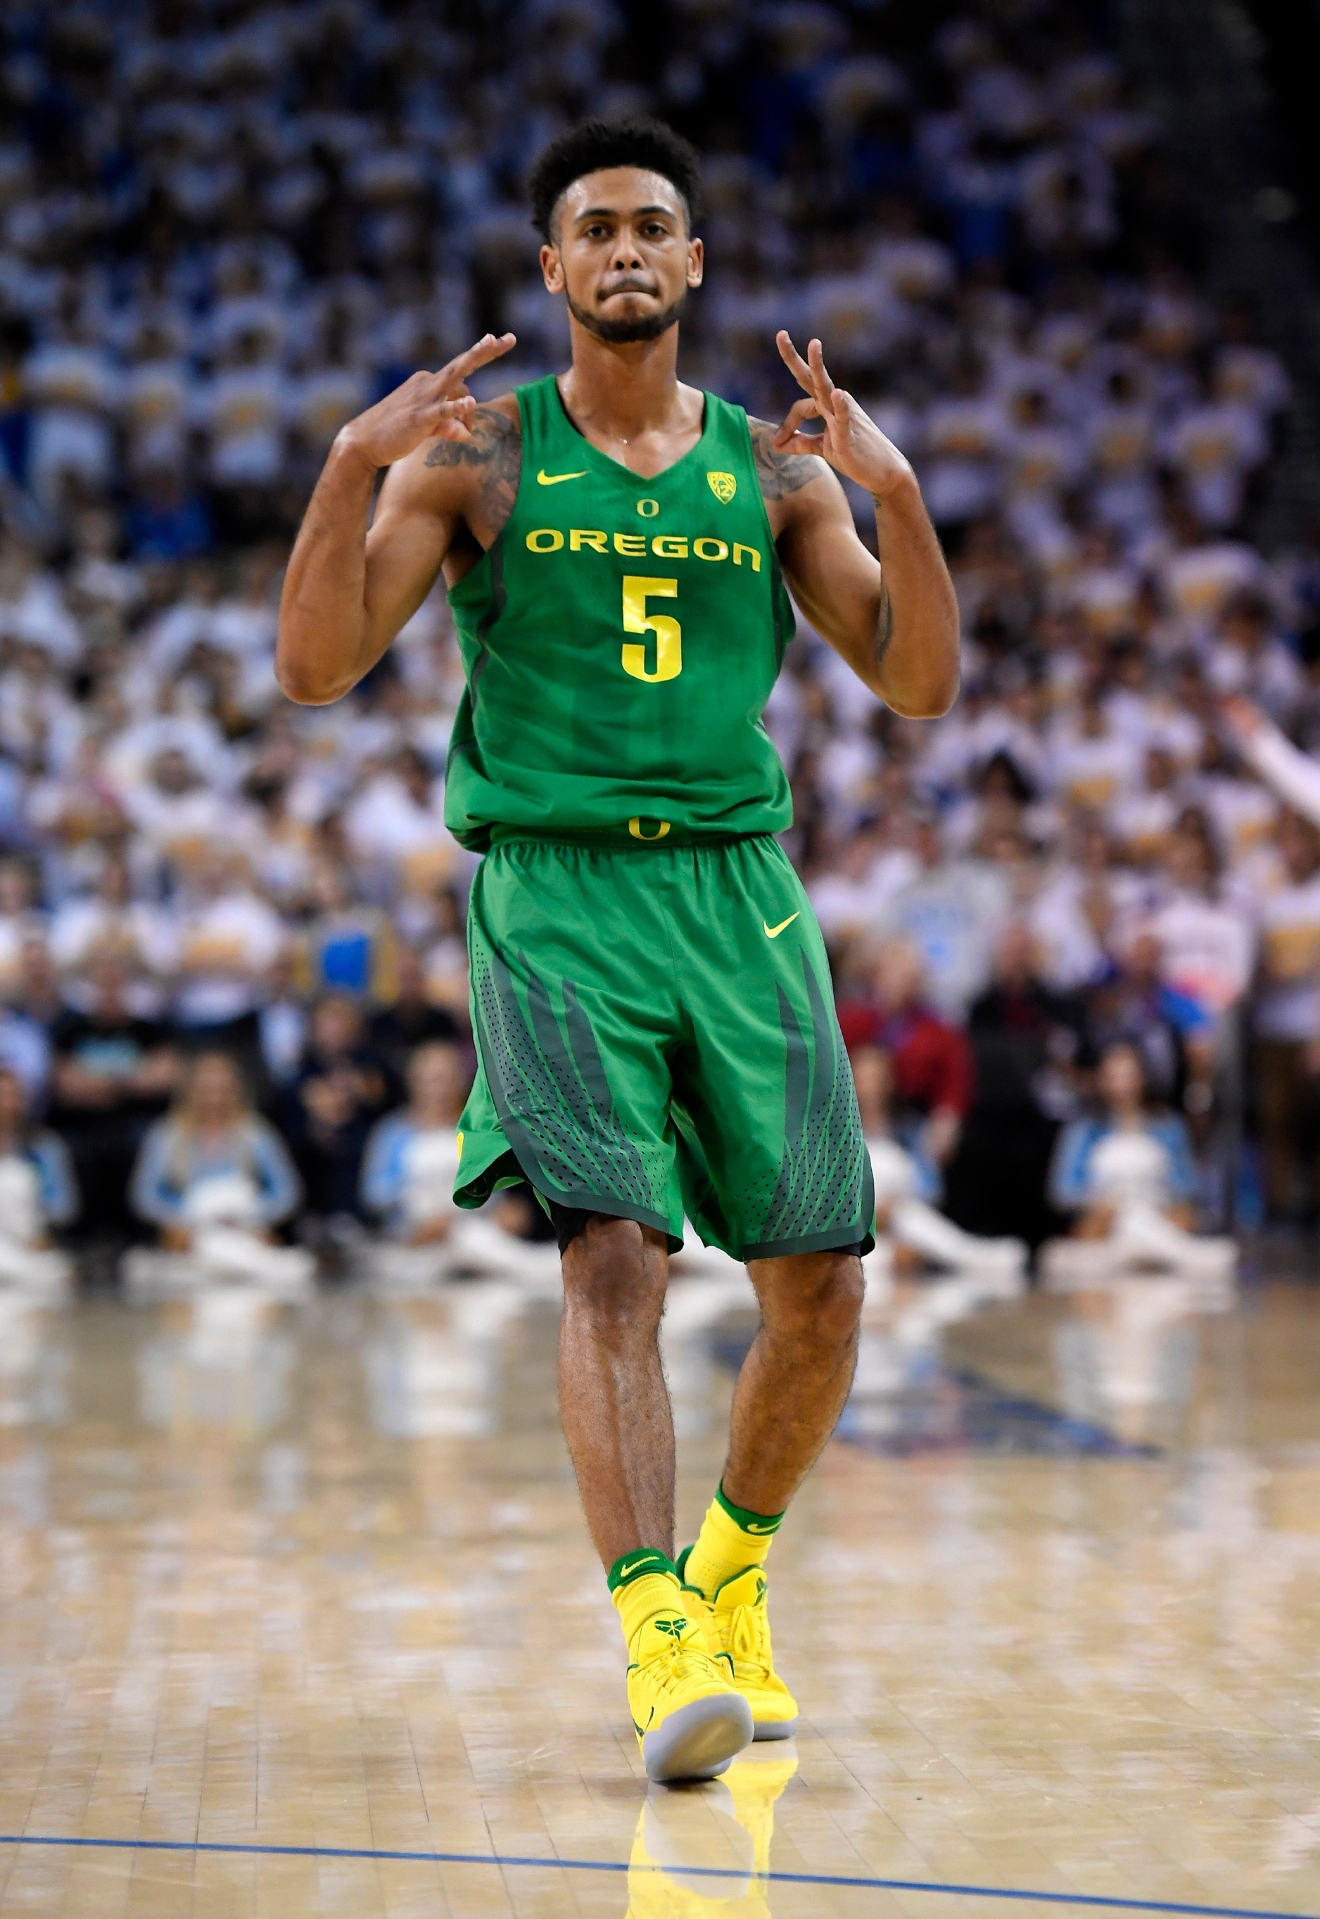 Oregon guard Tyler Dorsey gestures after scoring during the first half of an NCAA college basketball game against UCLA, Thursday, Feb. 9, 2017, in Los Angeles. (AP Photo/Mark J. Terrill)